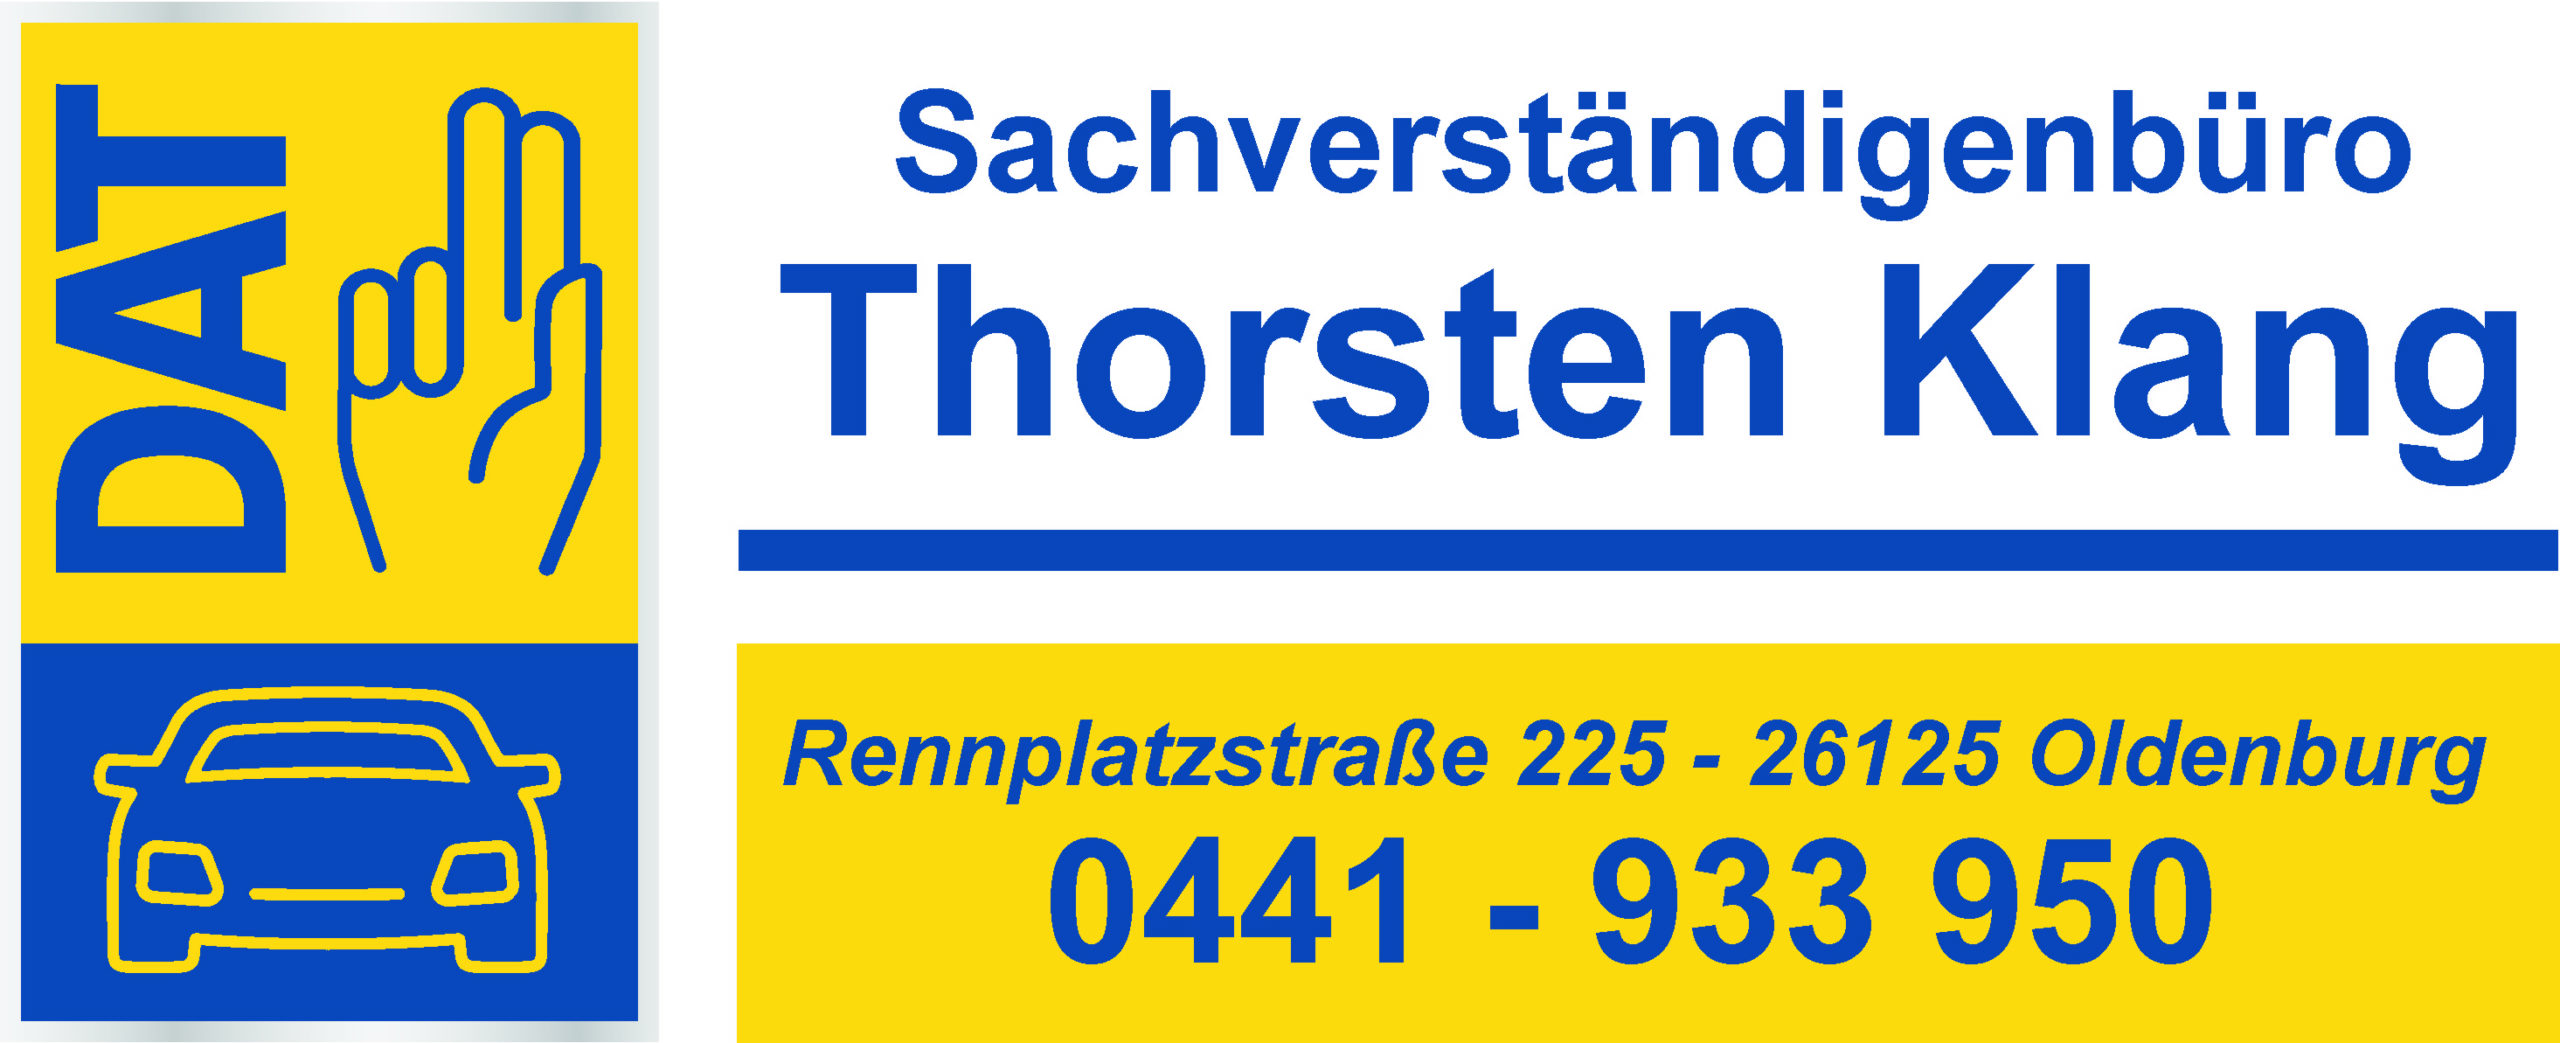 https://vfb-oldenburg.de/wp-content/uploads/Thorsten-Klang-scaled.jpg